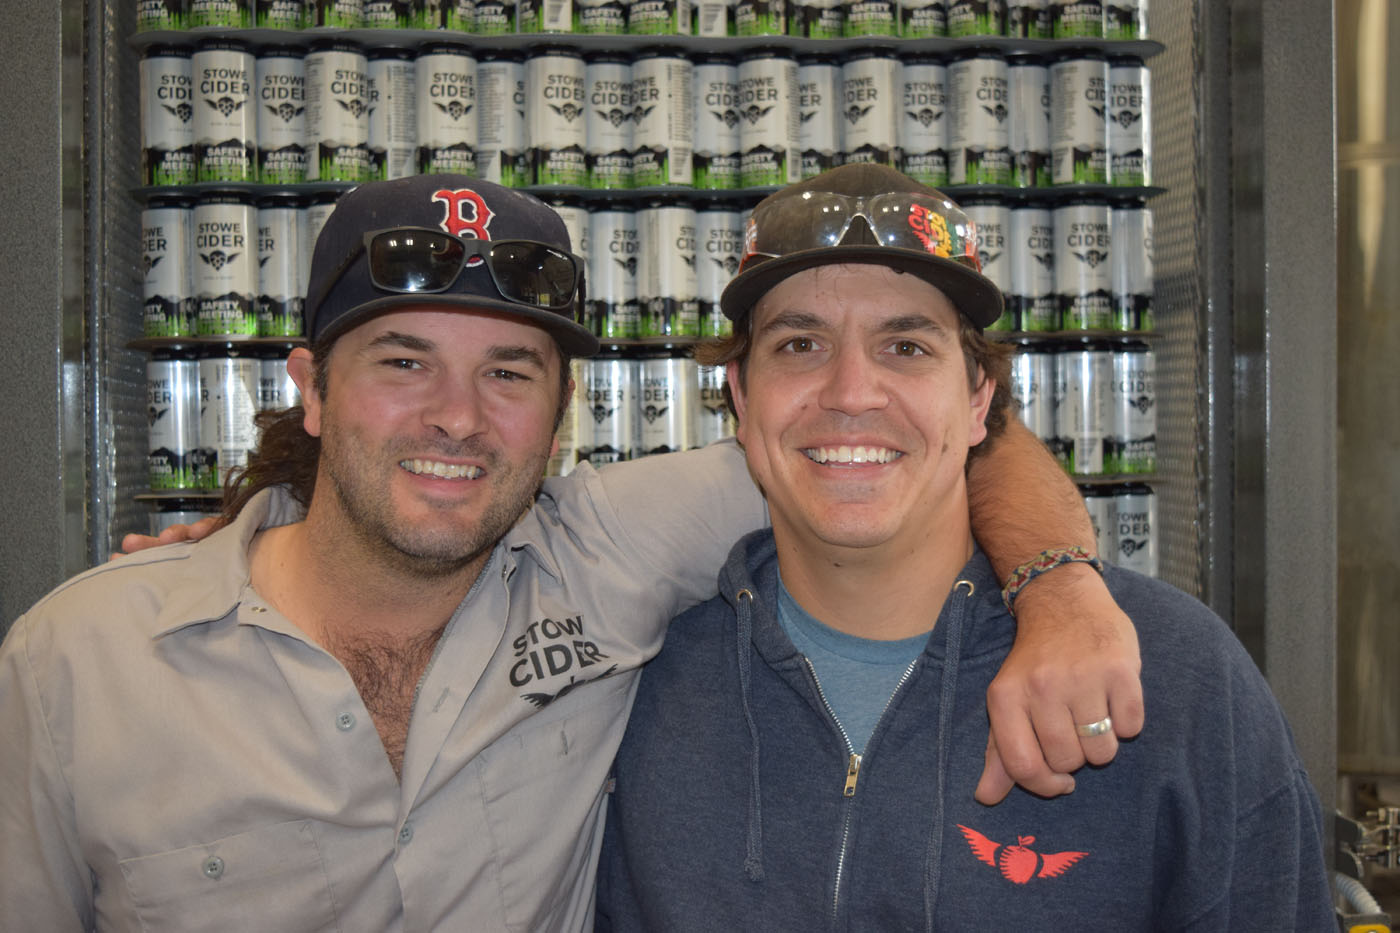 Mark Ray Co Owner and Stefan W. Windler Founder of Stowe Cider-1.jpg